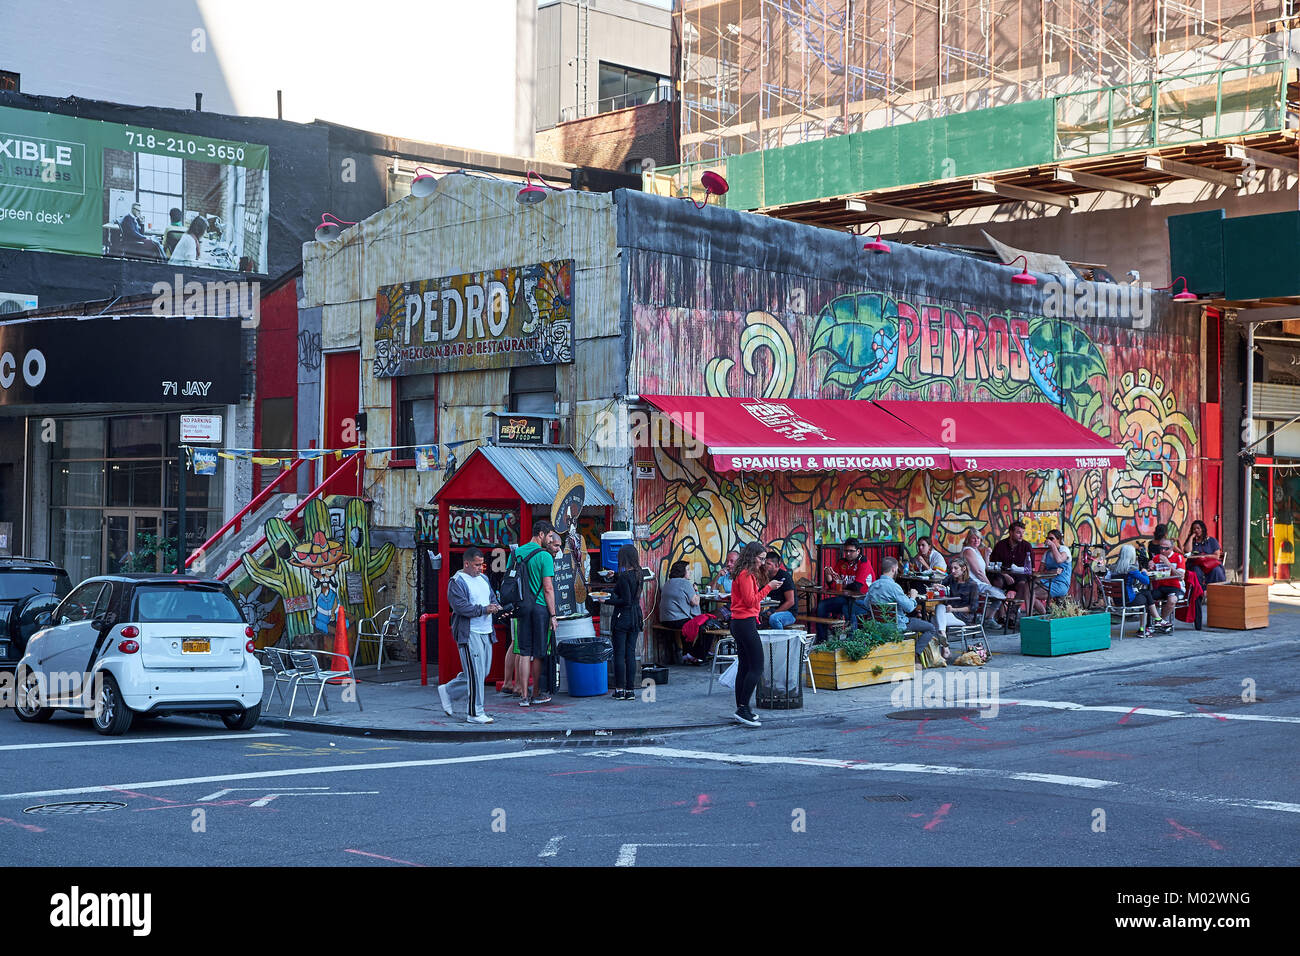 NEW YORK CITY - SEPTEMBER 25, 2016: Pedro's spanish and mexican food on the corner of Front and Jay Street - Stock Image